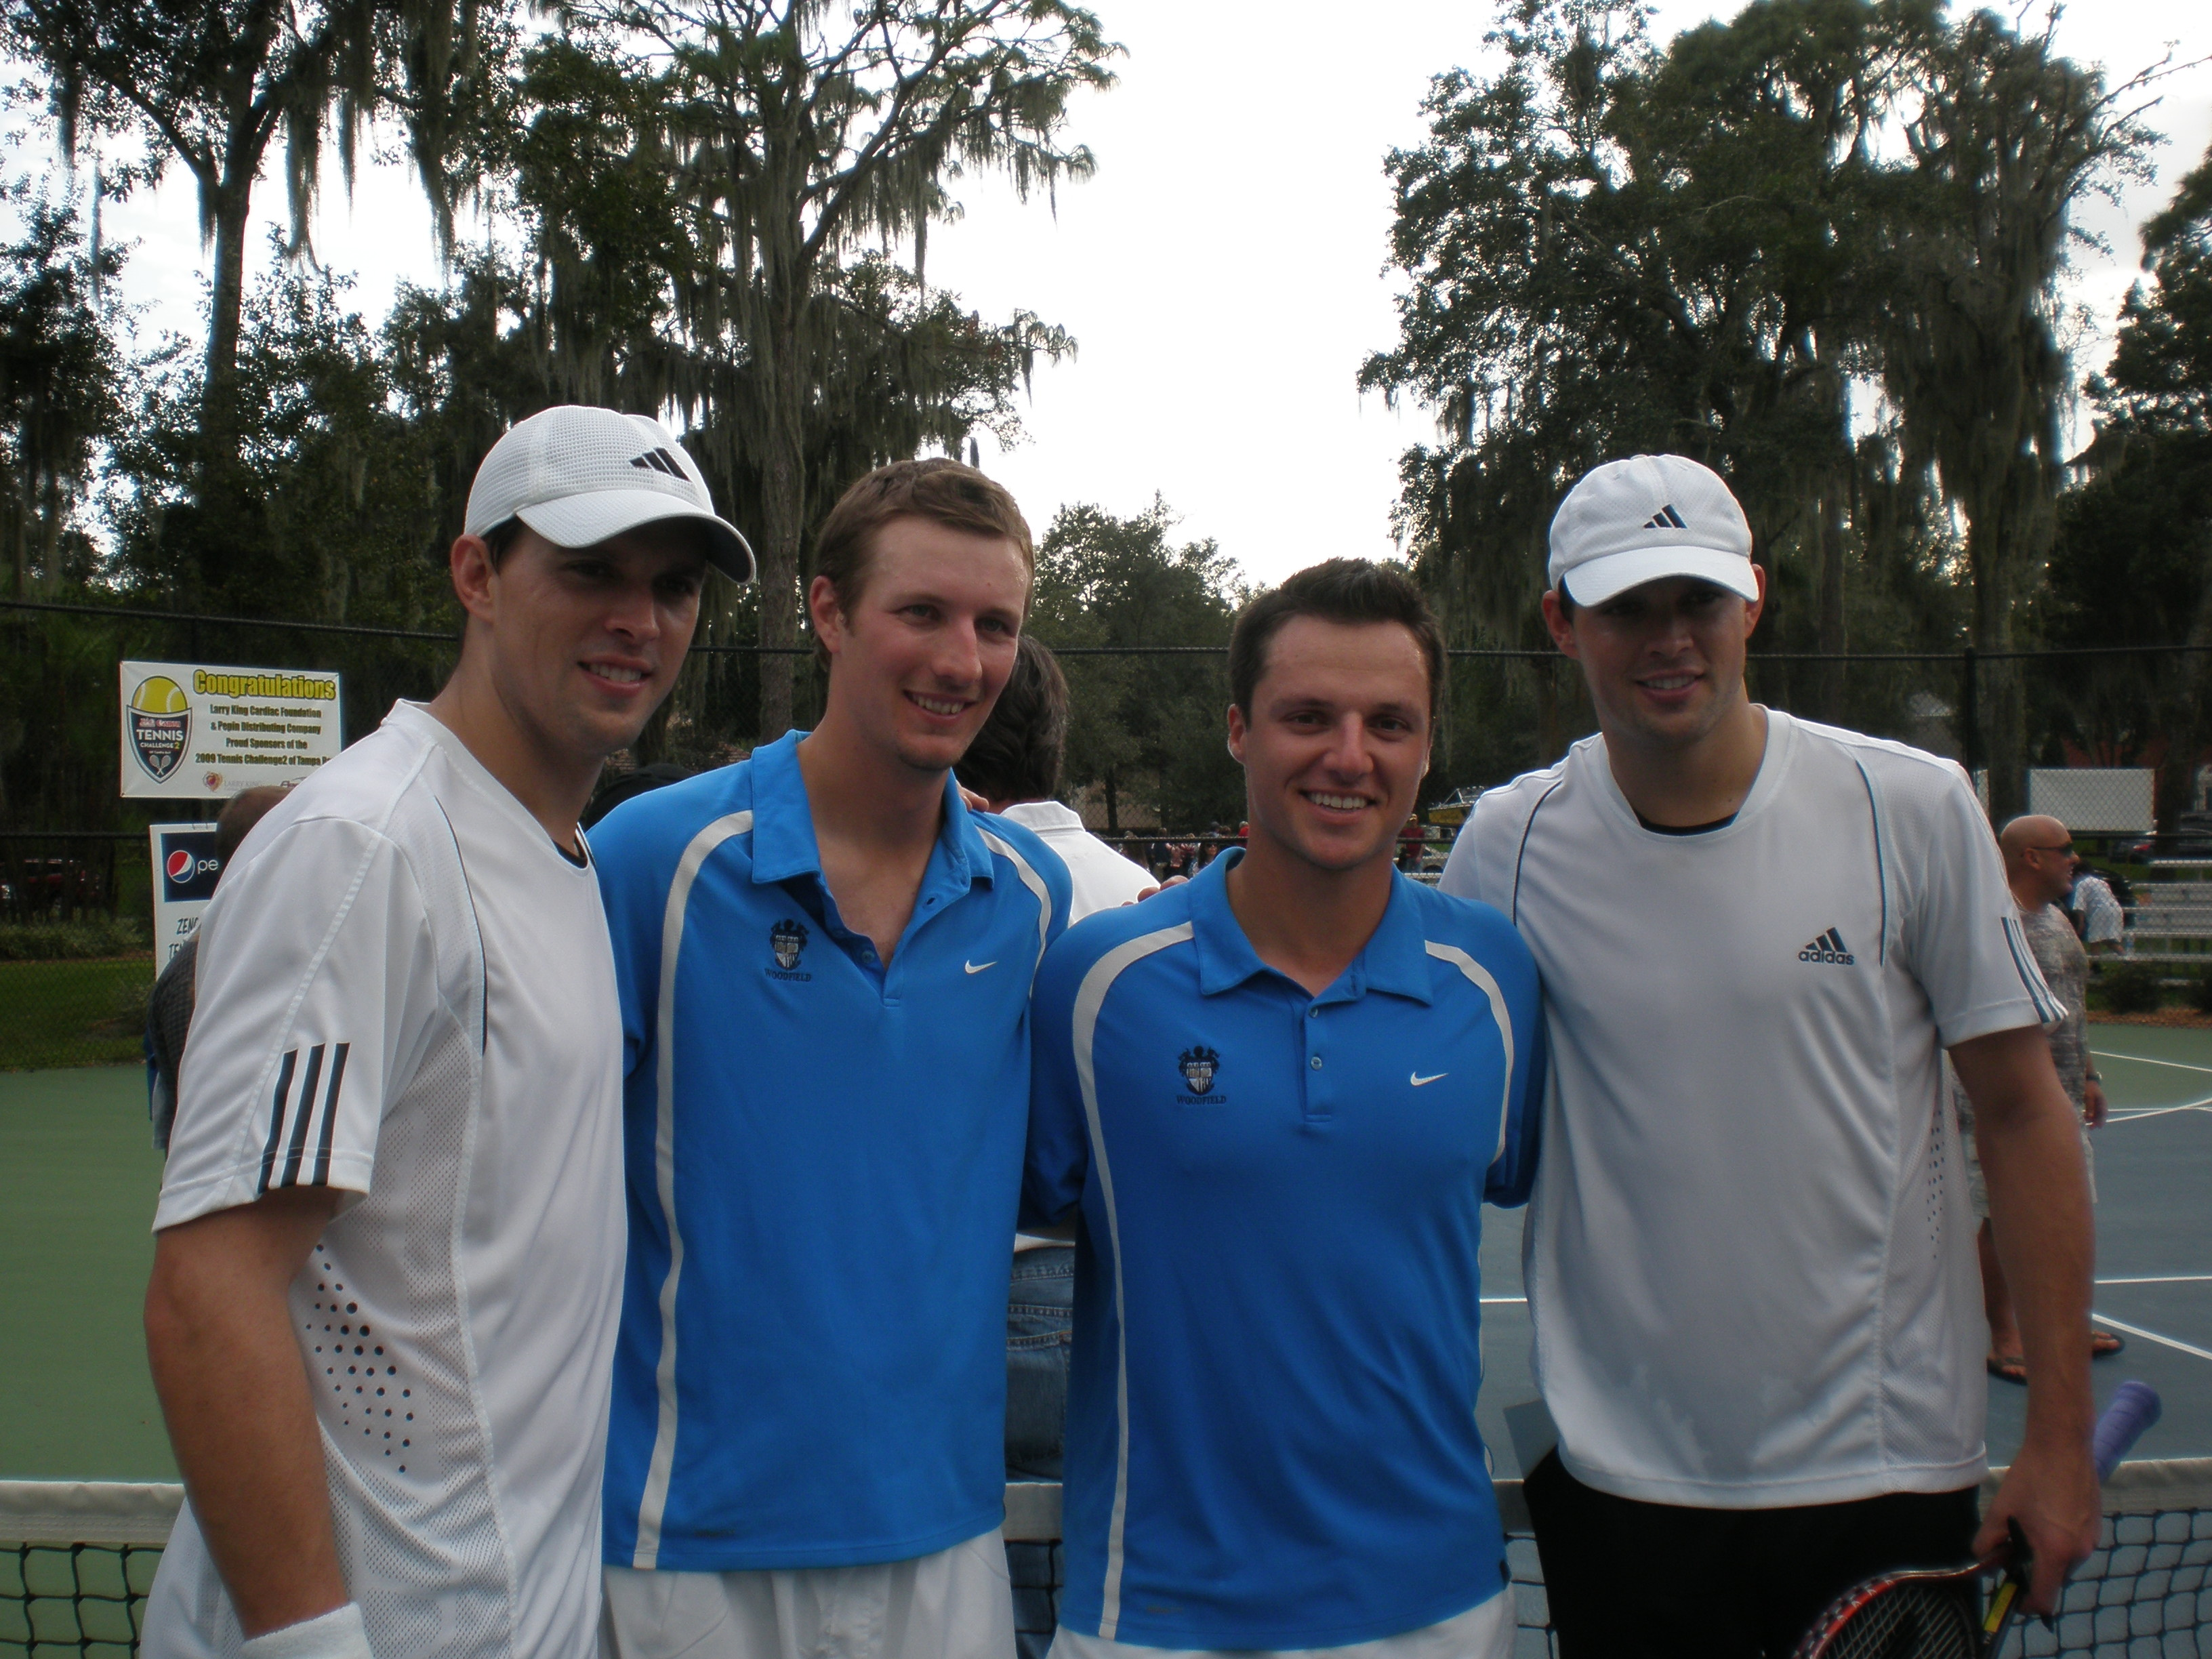 Goran and Bryan Bros